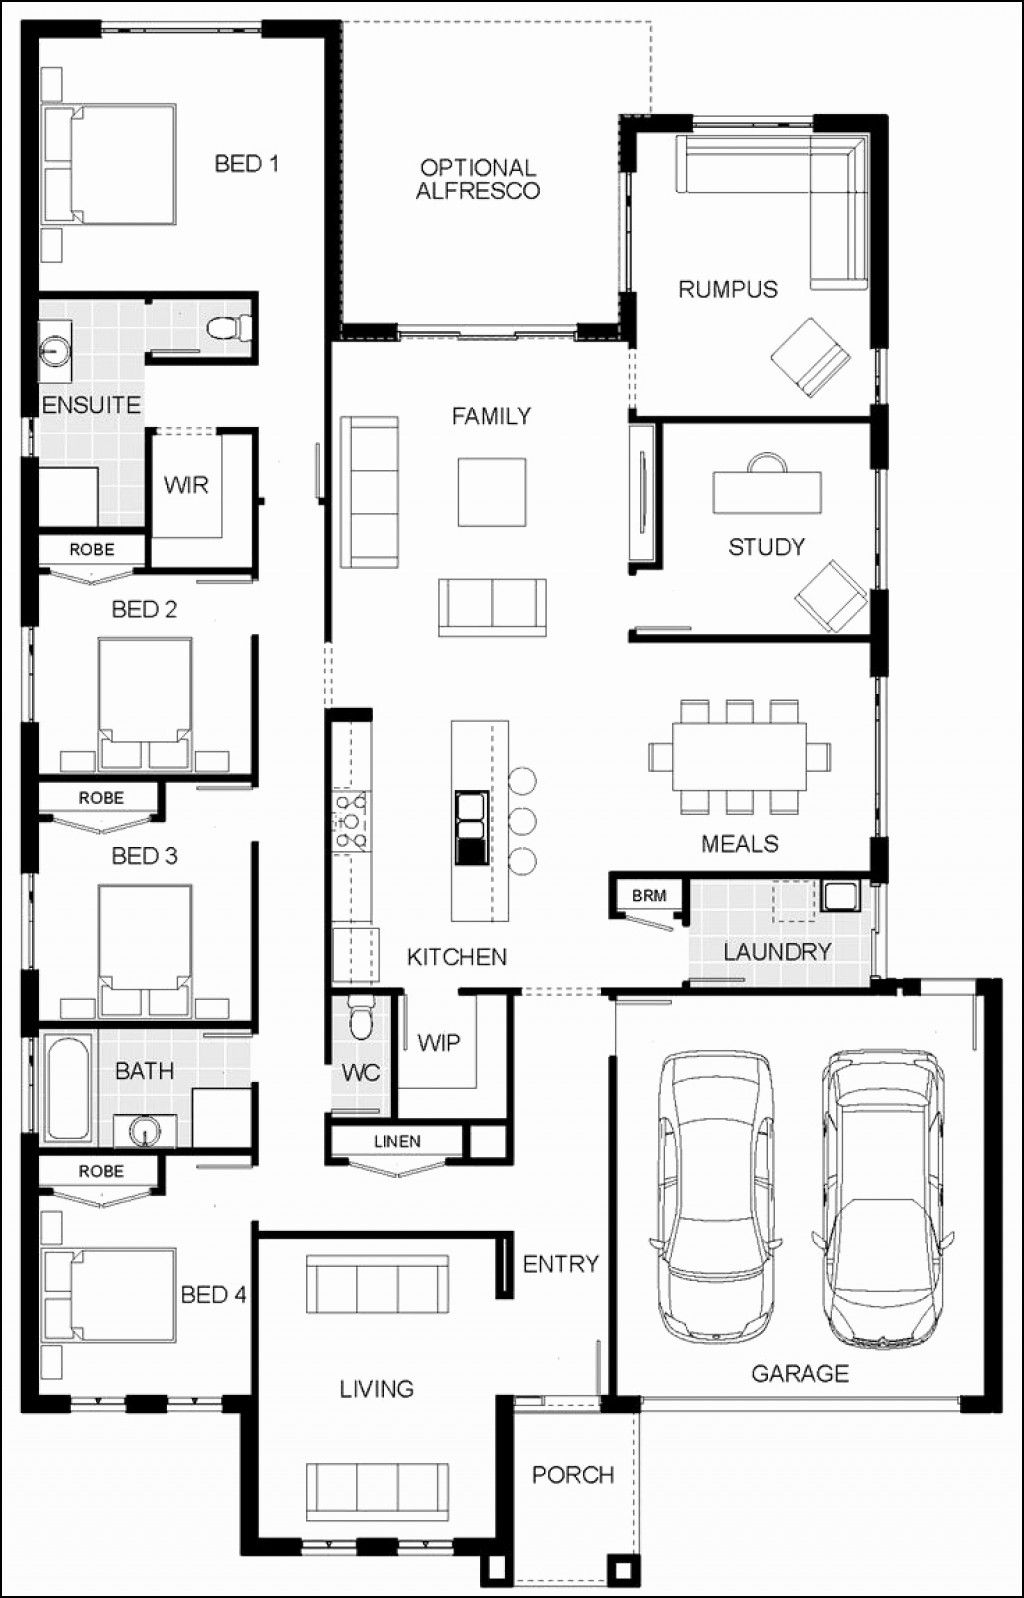 How Does A Remote Control On A Gate Actually Work Shipping Container Home Ideas Floor Plan Design Floor Plan Creator Floor Plan Generator